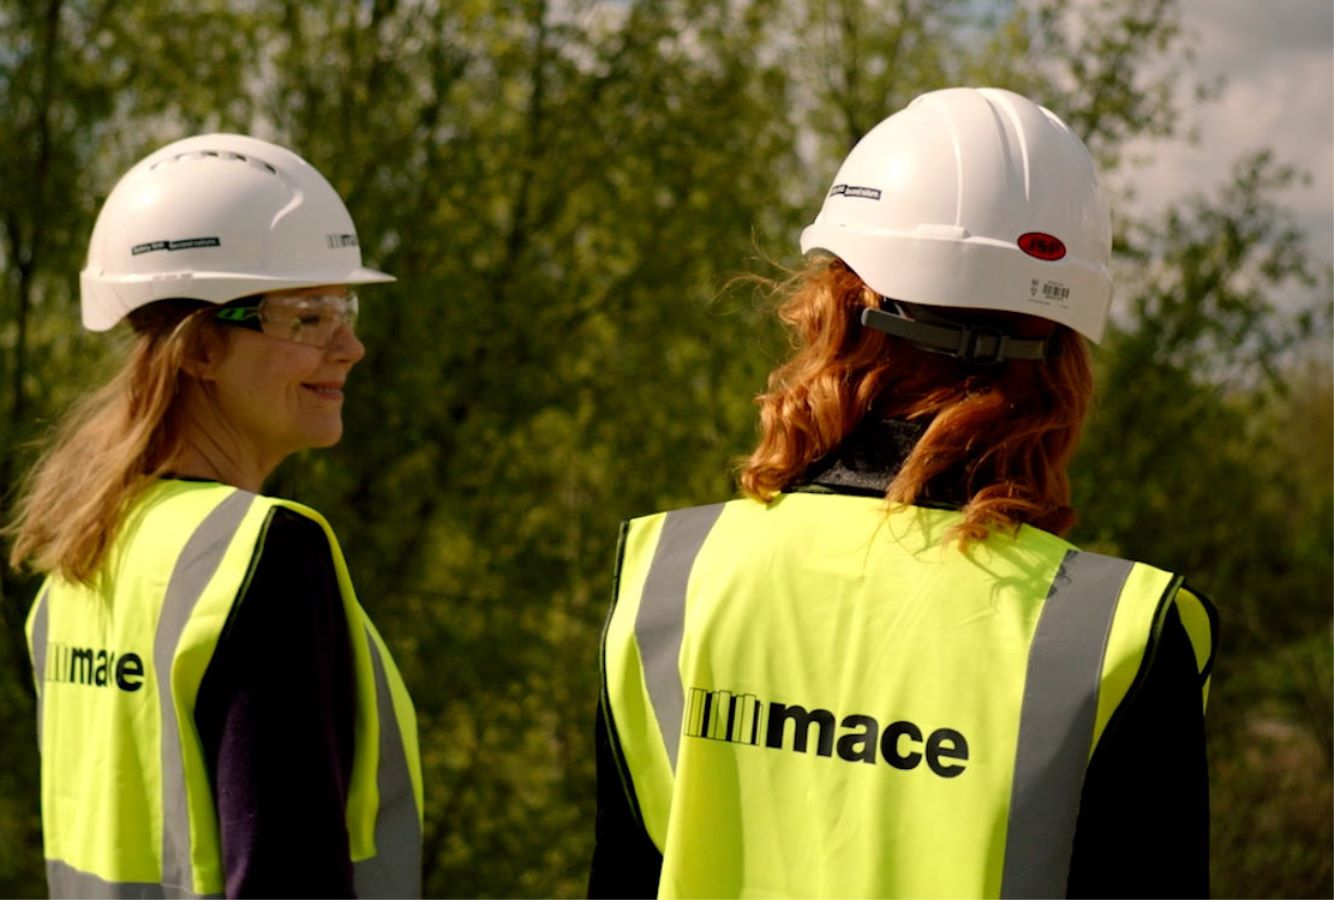 To Grow Together Mace Group